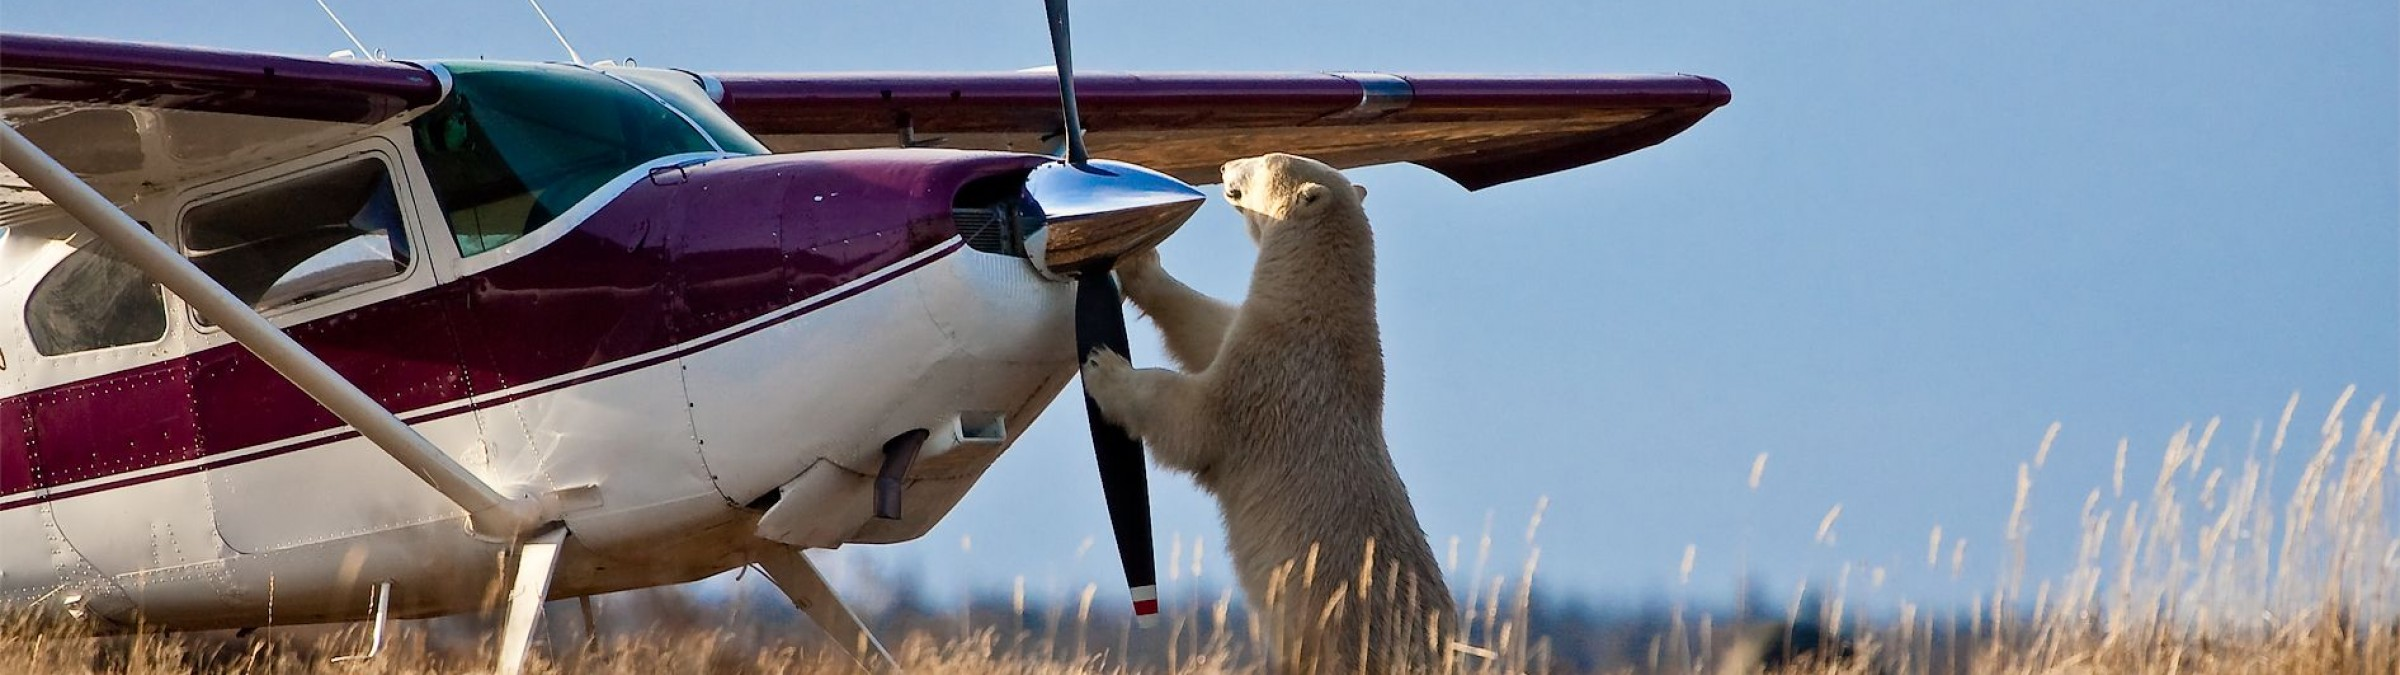 Polar Bear with small plane, credit Churchill Wild